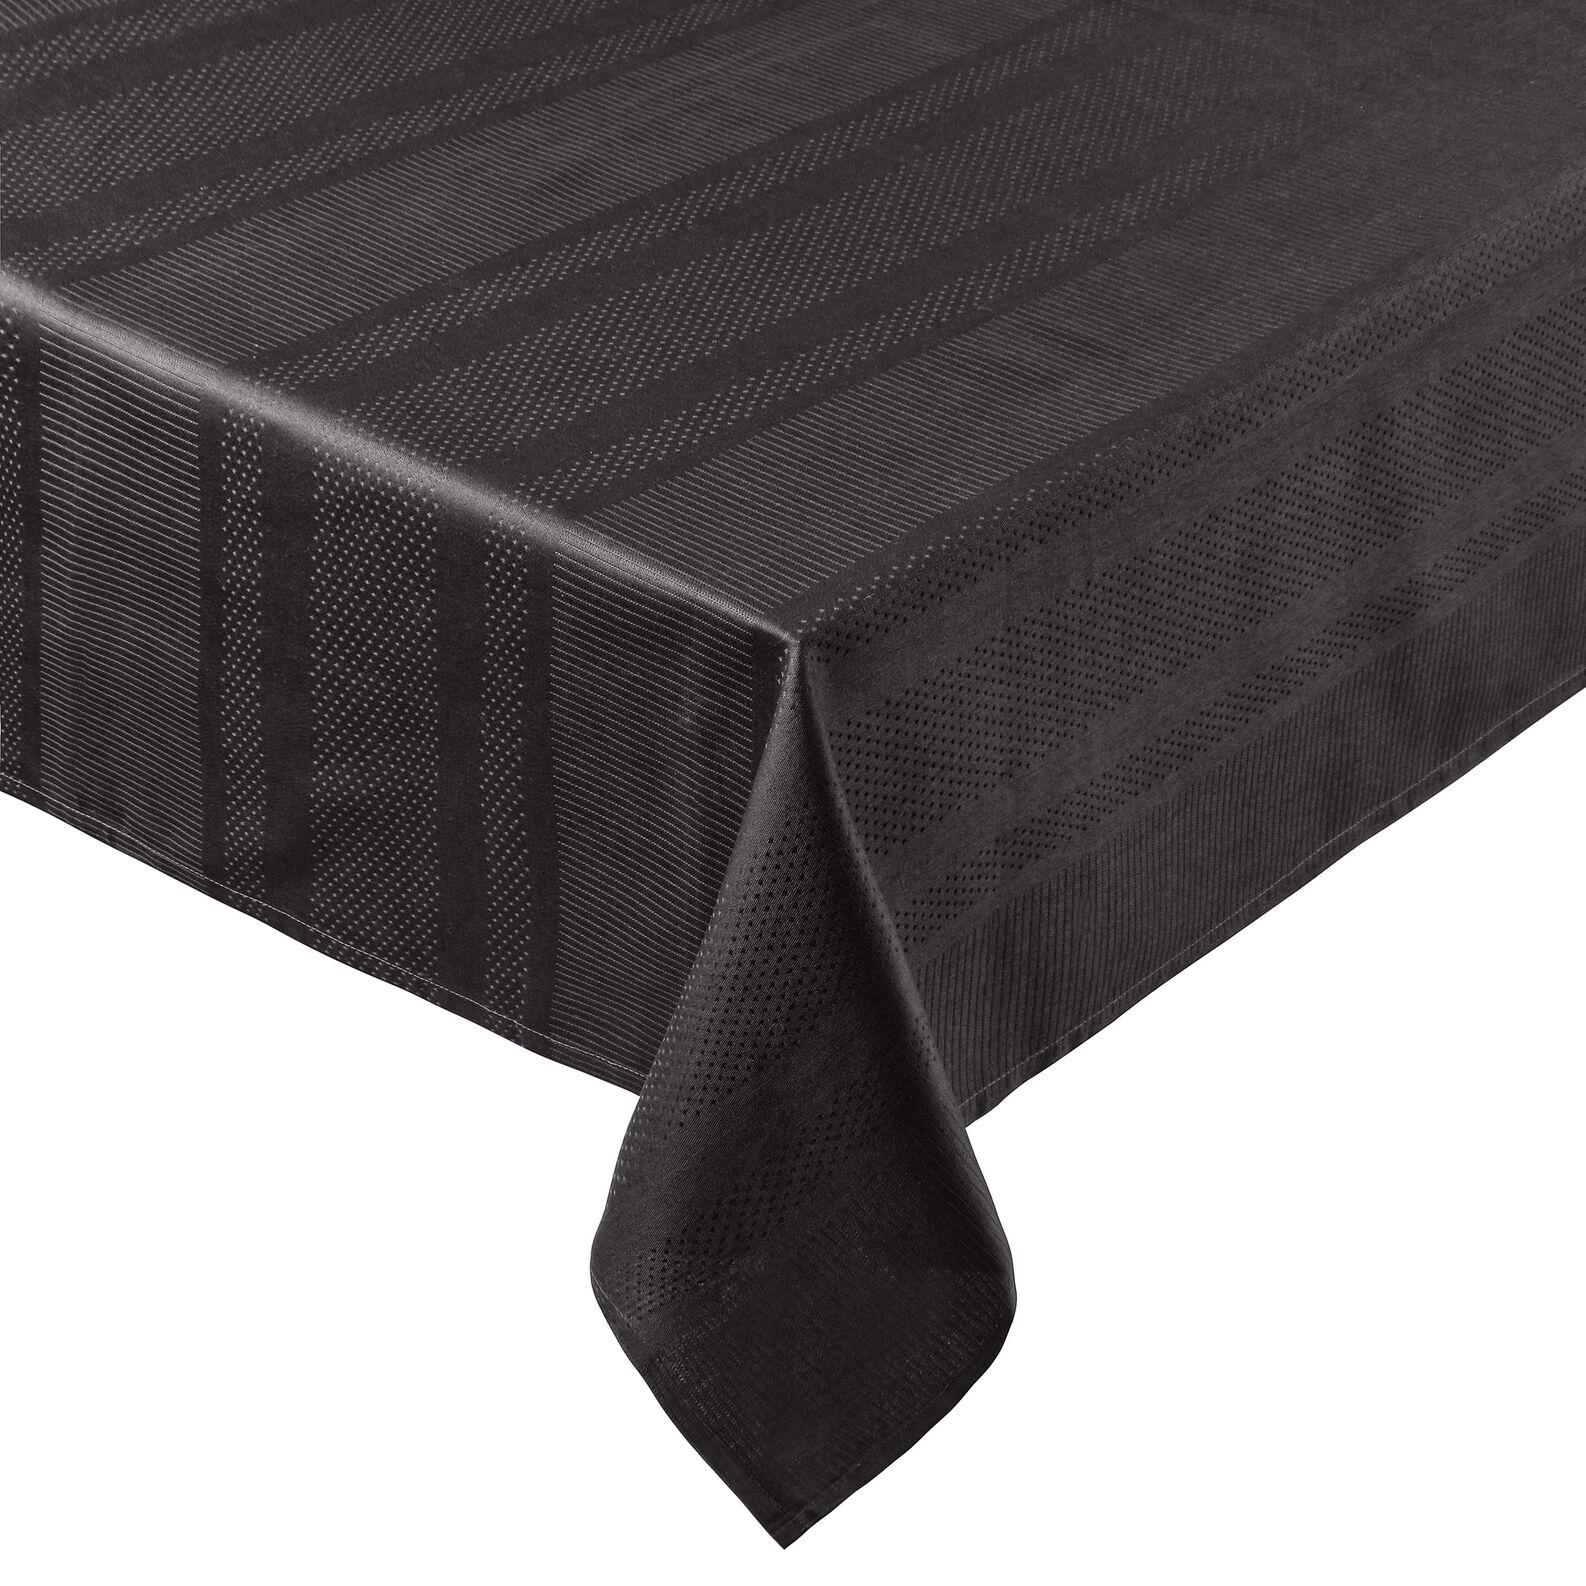 100% Egyptian cotton jacquard tablecloth